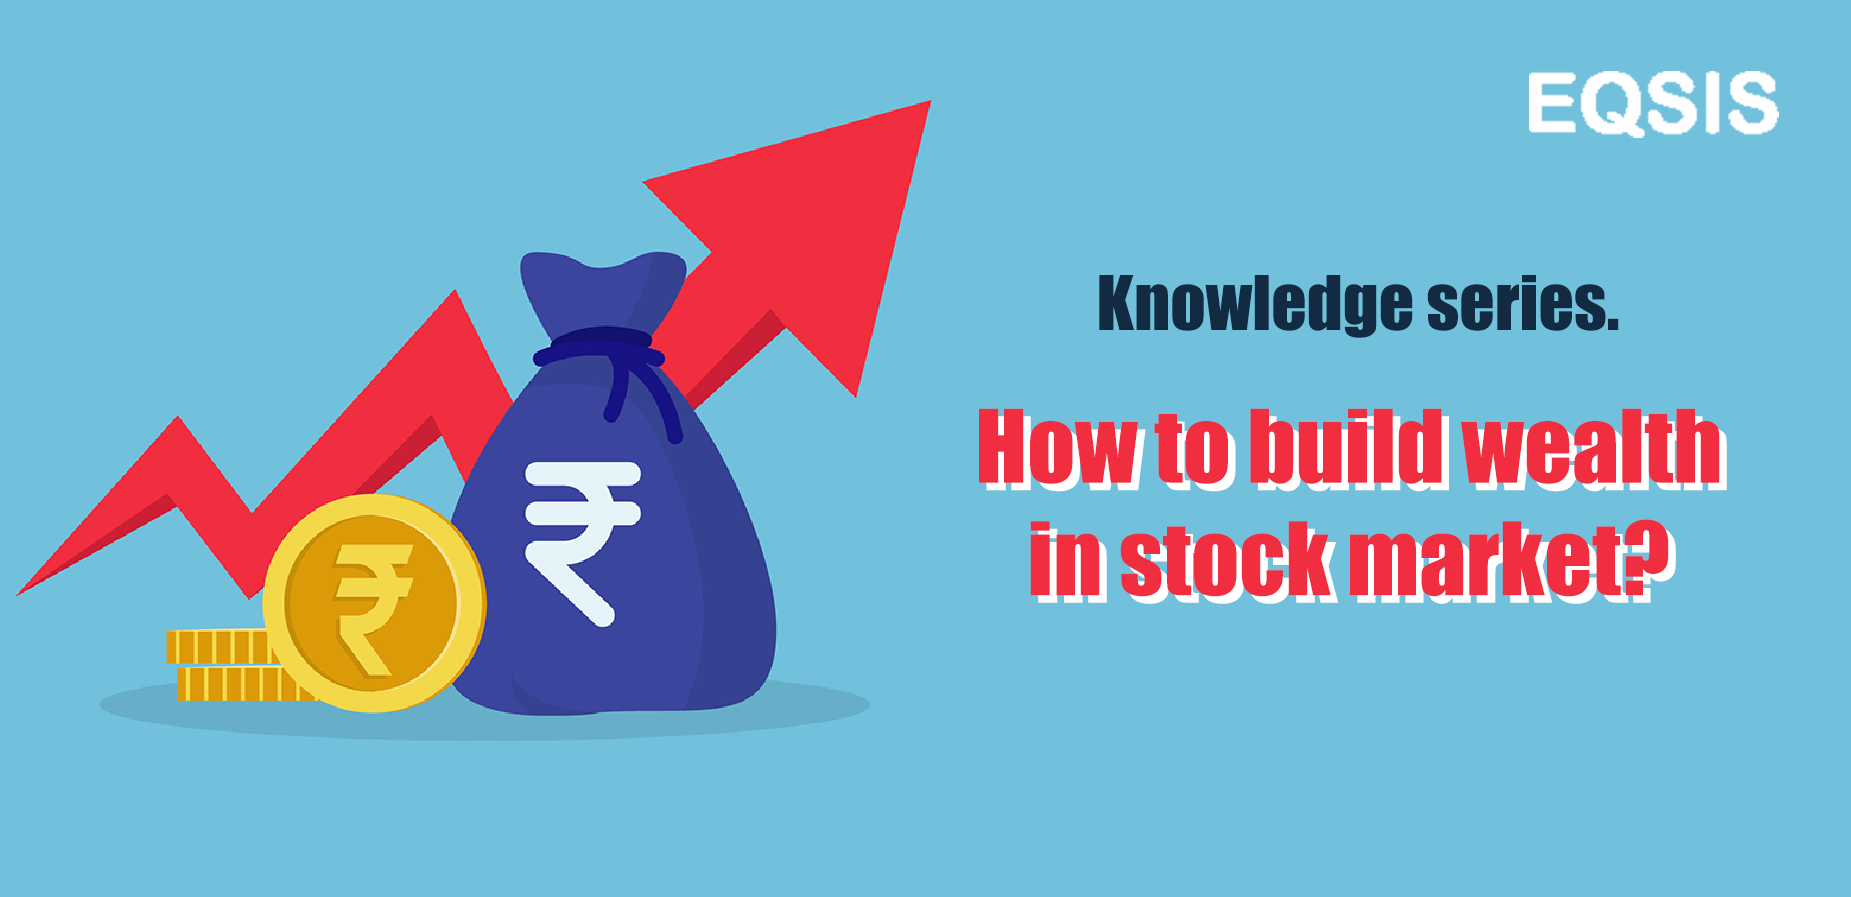 How to build wealth in stock market